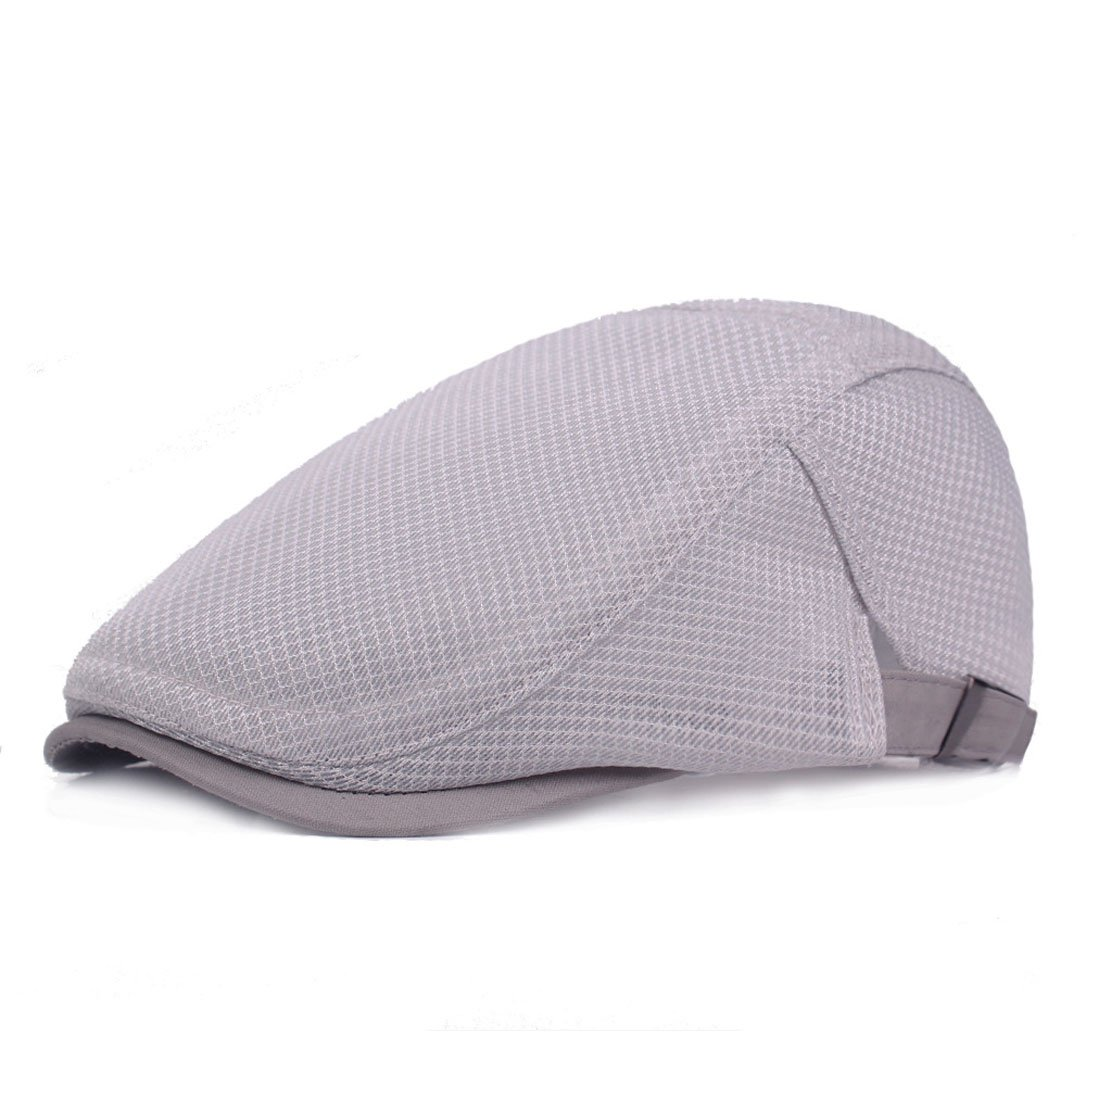 King Star Men Summer Newsboy Hat Beret Ivy Cap Cabbie Breathable Mesh Caps